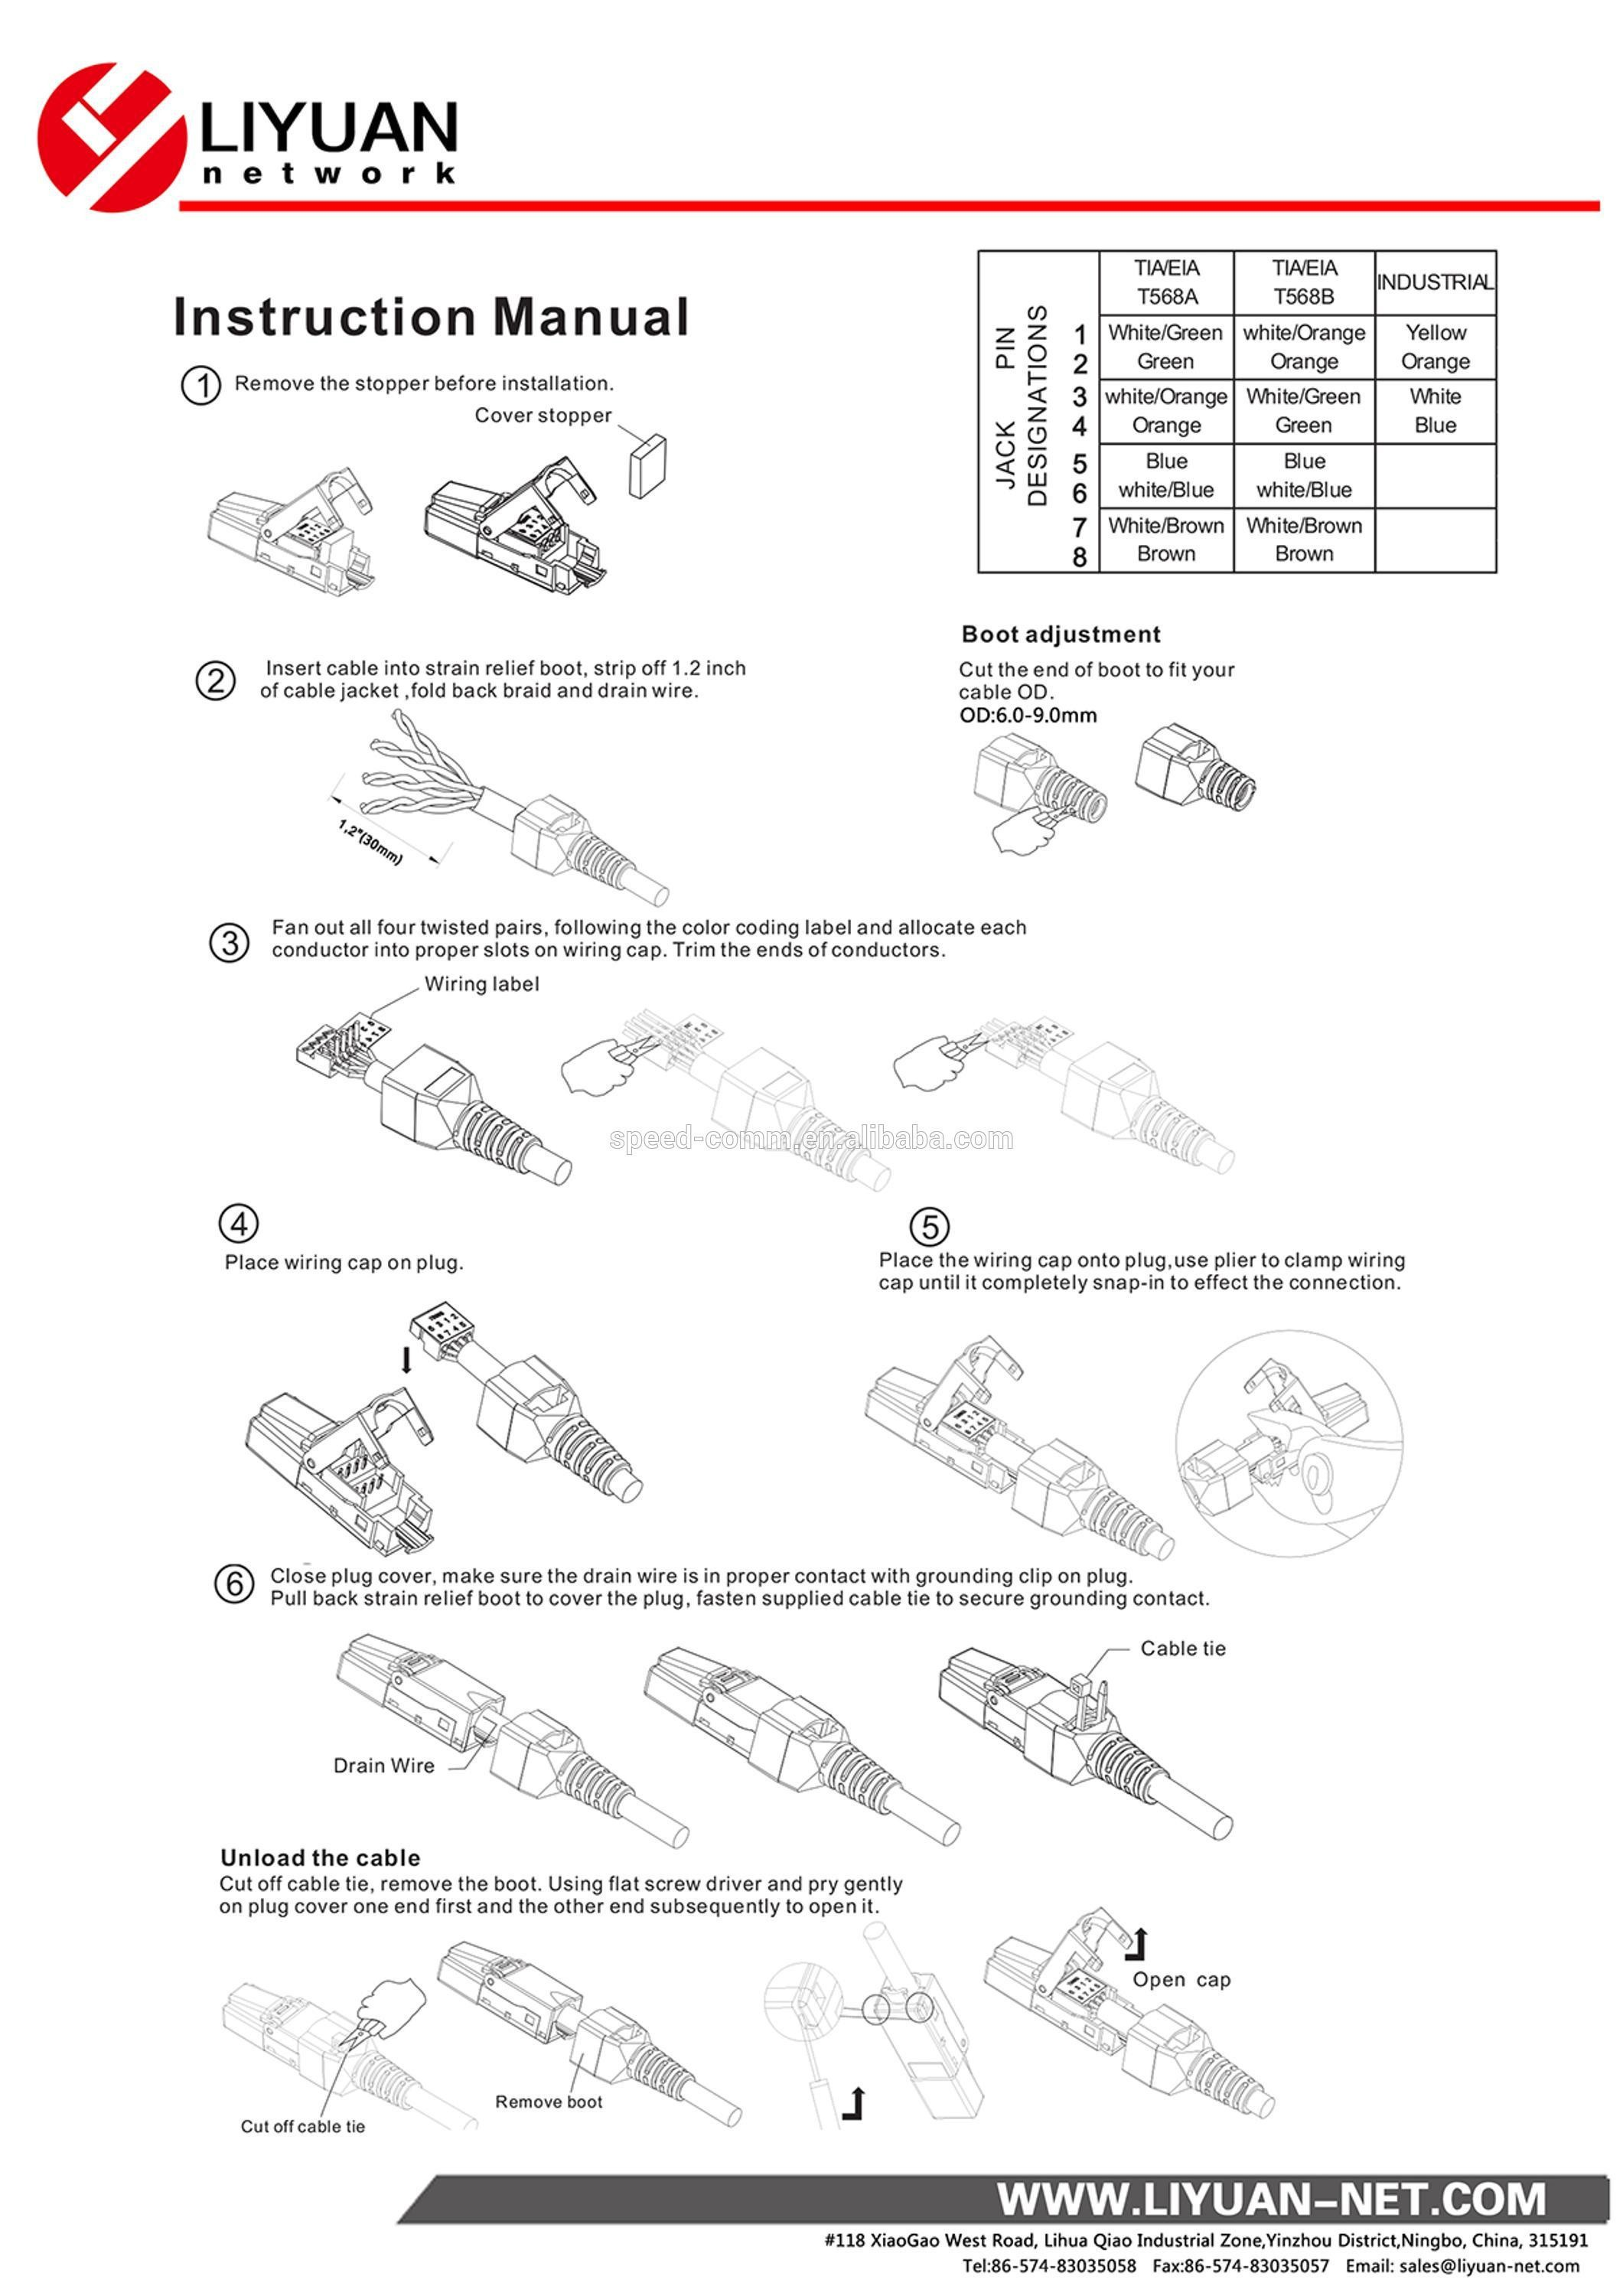 Cat 5e Wiring Diagram Wire Diagram for Cat5e Rj45 Connectors Fresh Rj45 Connector Wiring Of Cat 5e Wiring Diagram